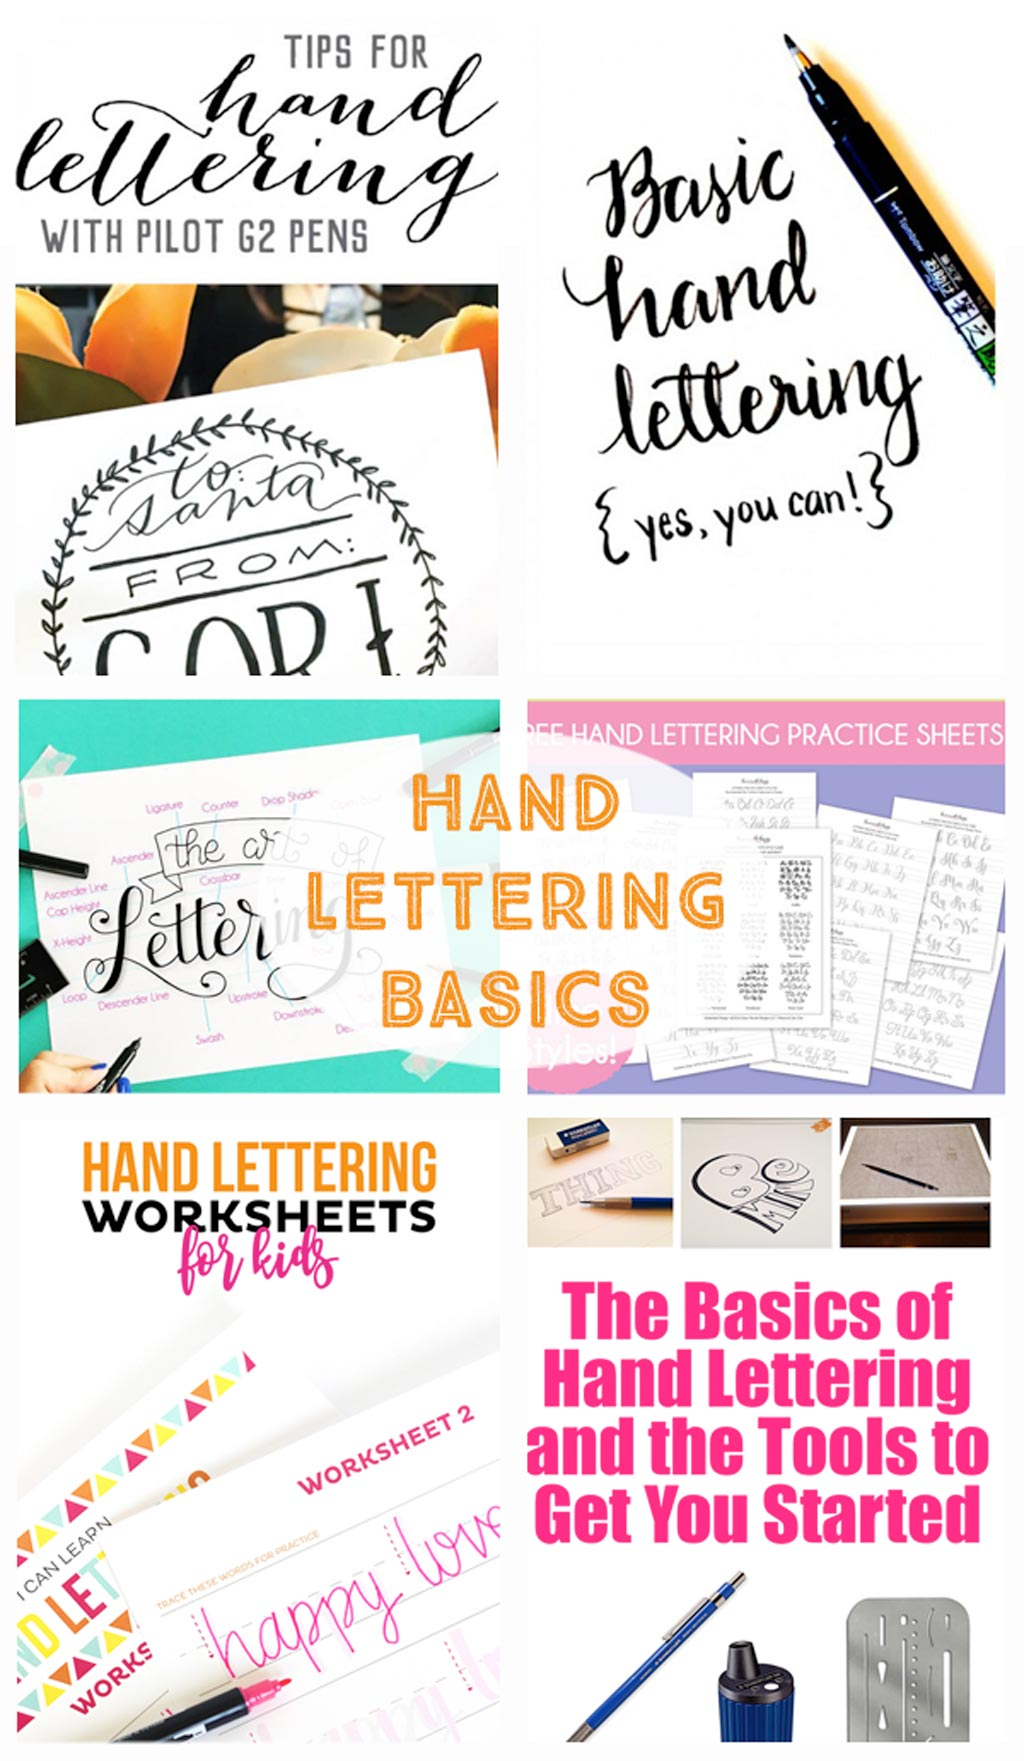 Hand Lettering Tutorials - How to start hand lettering, tutorials, printables, tips, tricks and practice sheets.